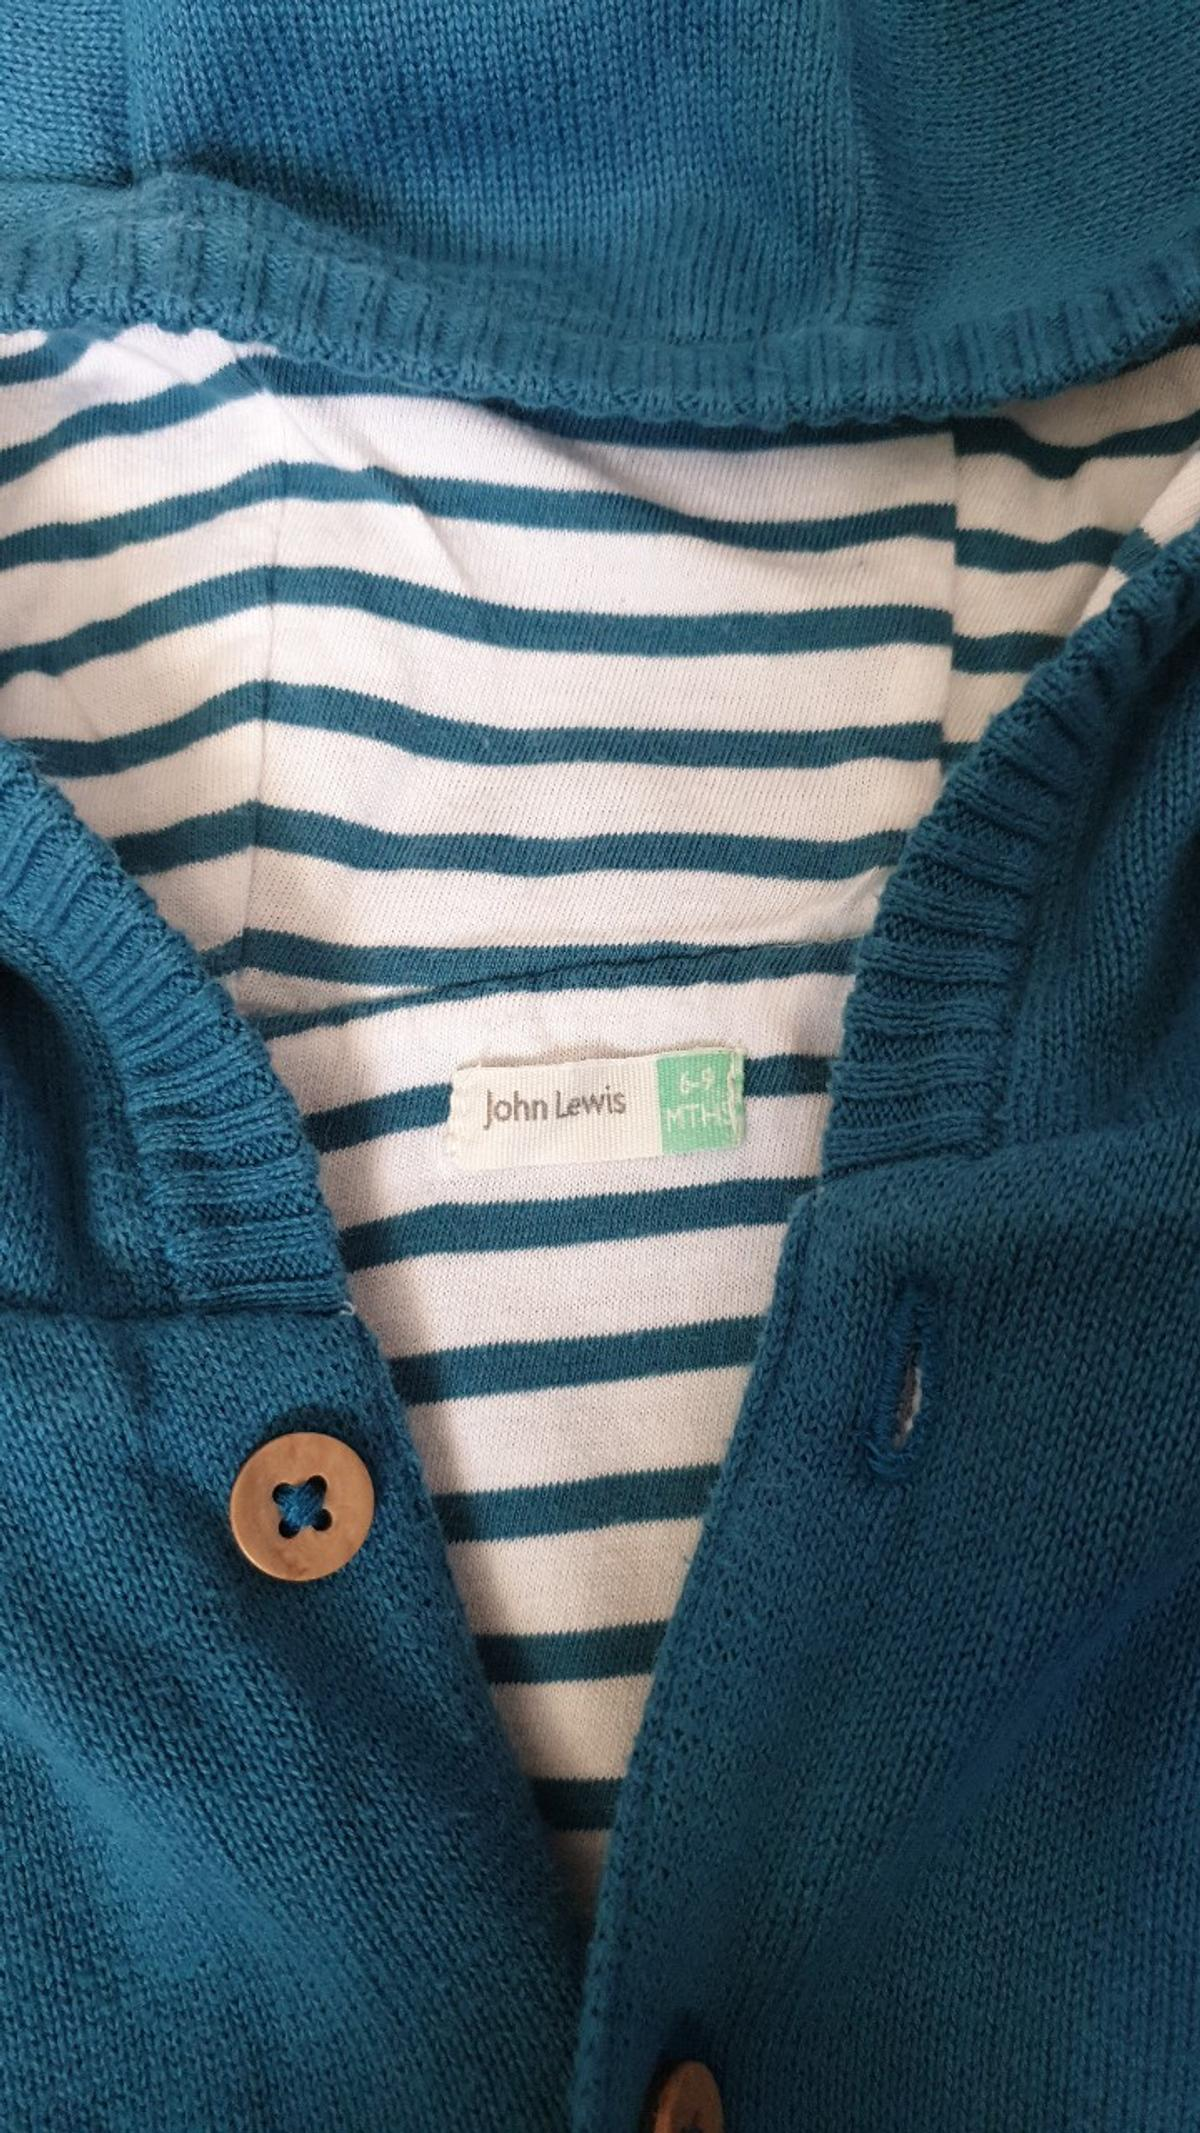 lovely cardi/summer jacket with good. buttons up. lots of wear left in it. quick sale.